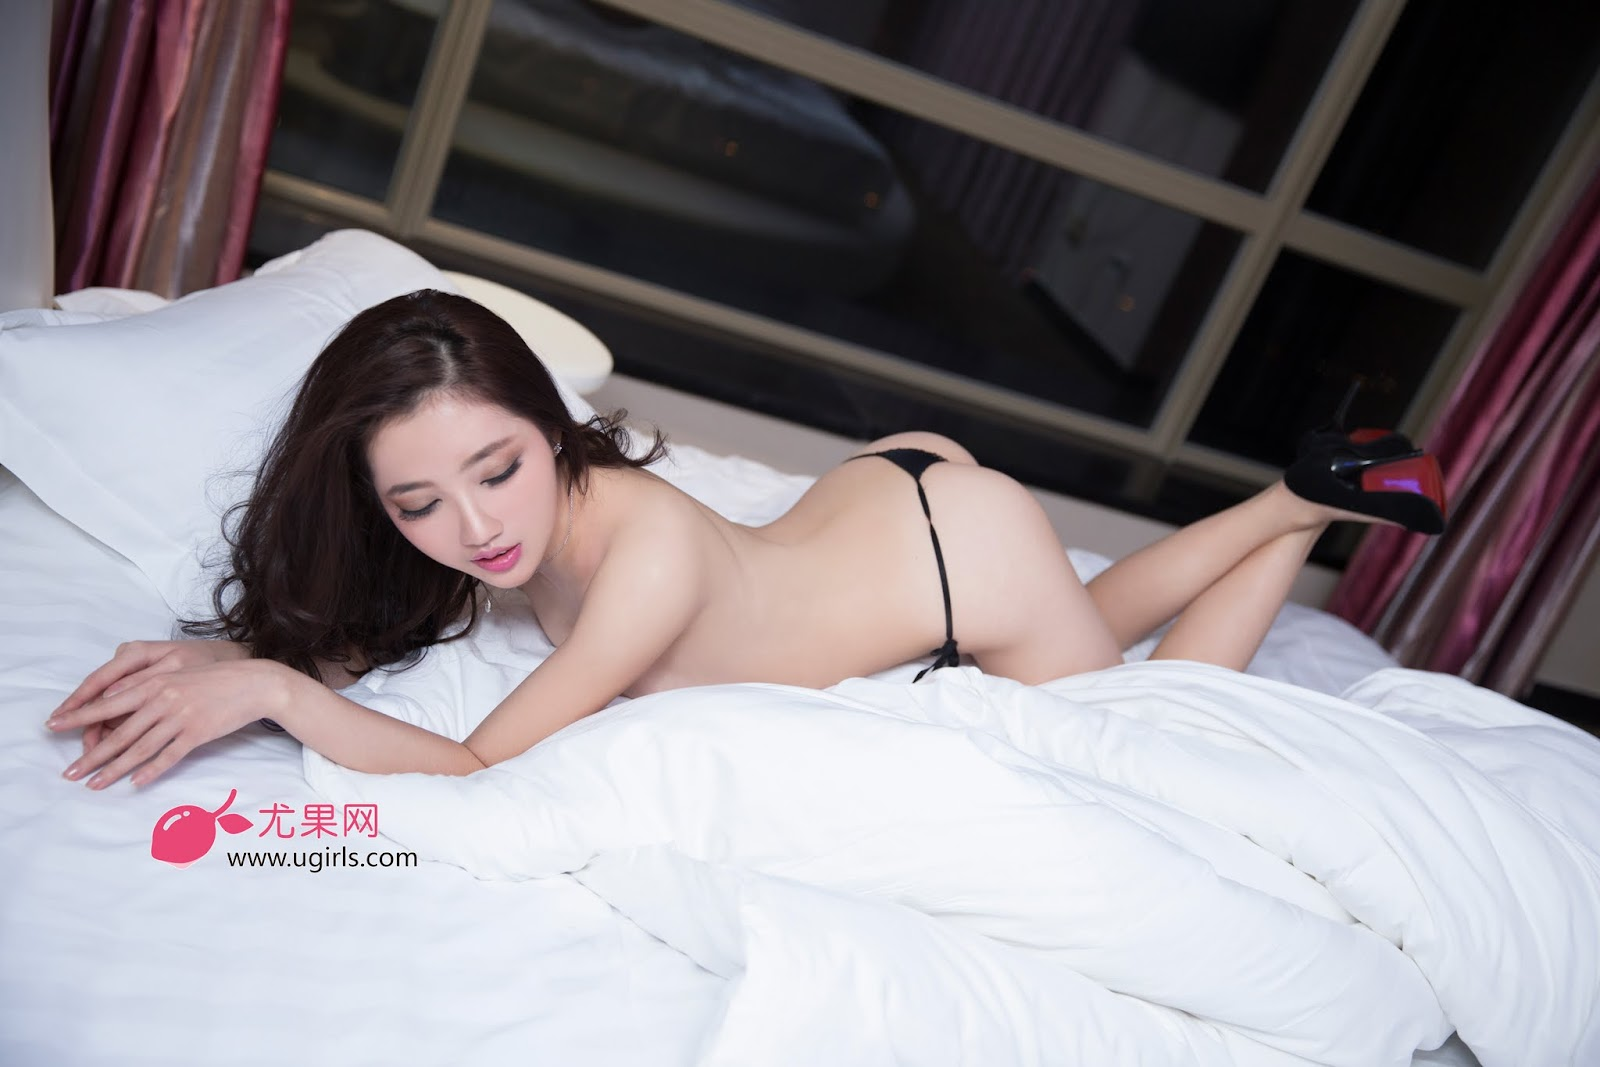 A14A5566 - Hot Model UGIRLS NO.8